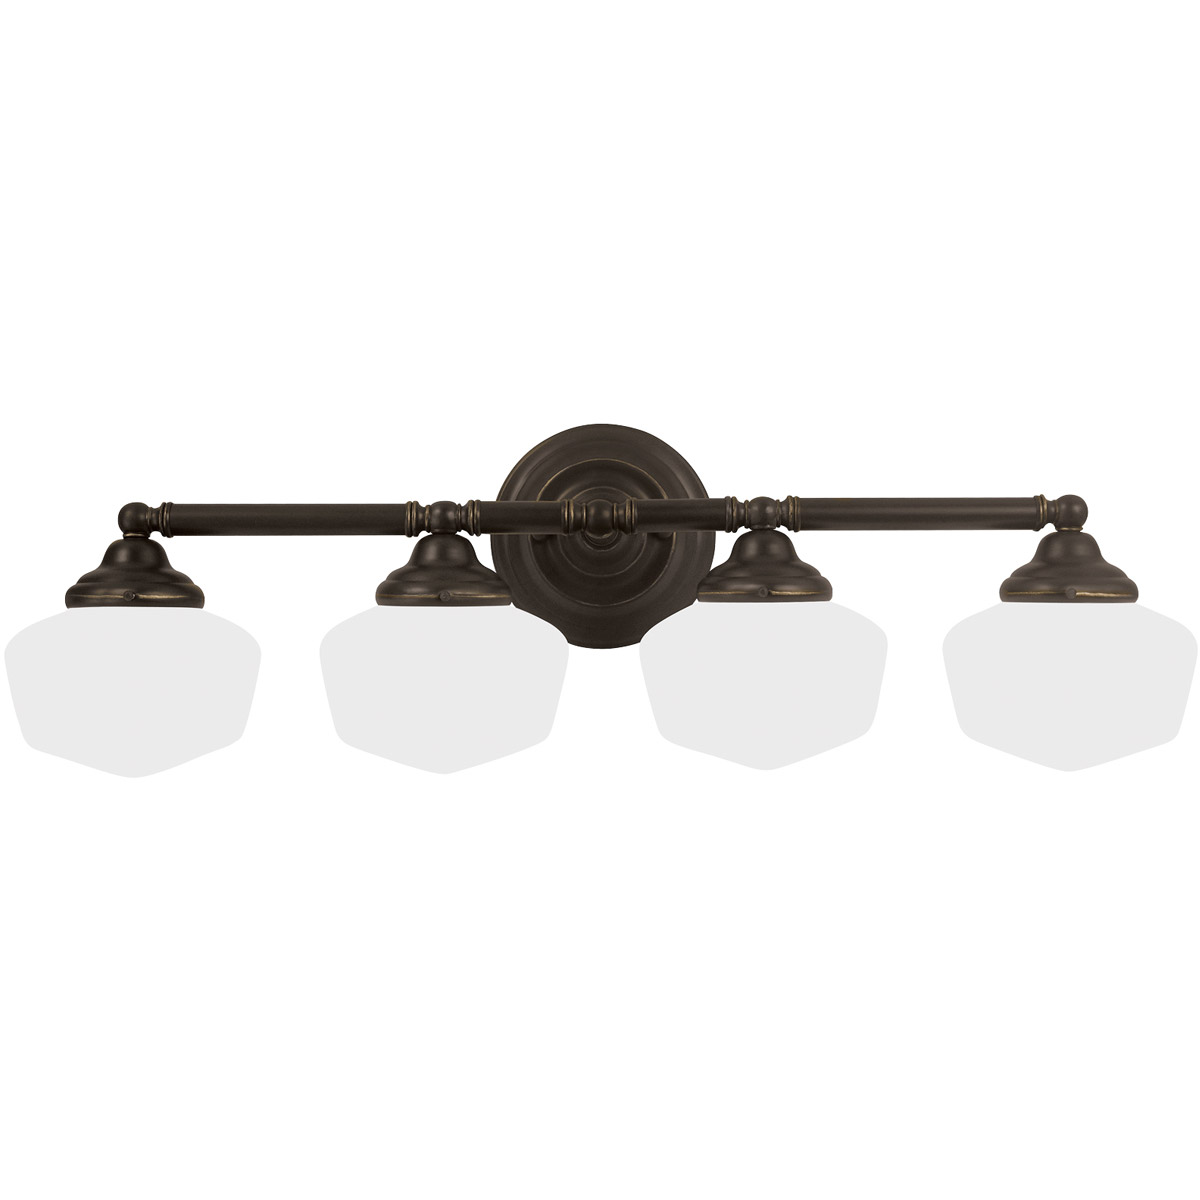 Sea Gull Academy 4 Light Bath Vanity in Heirloom Bronze 44439-782